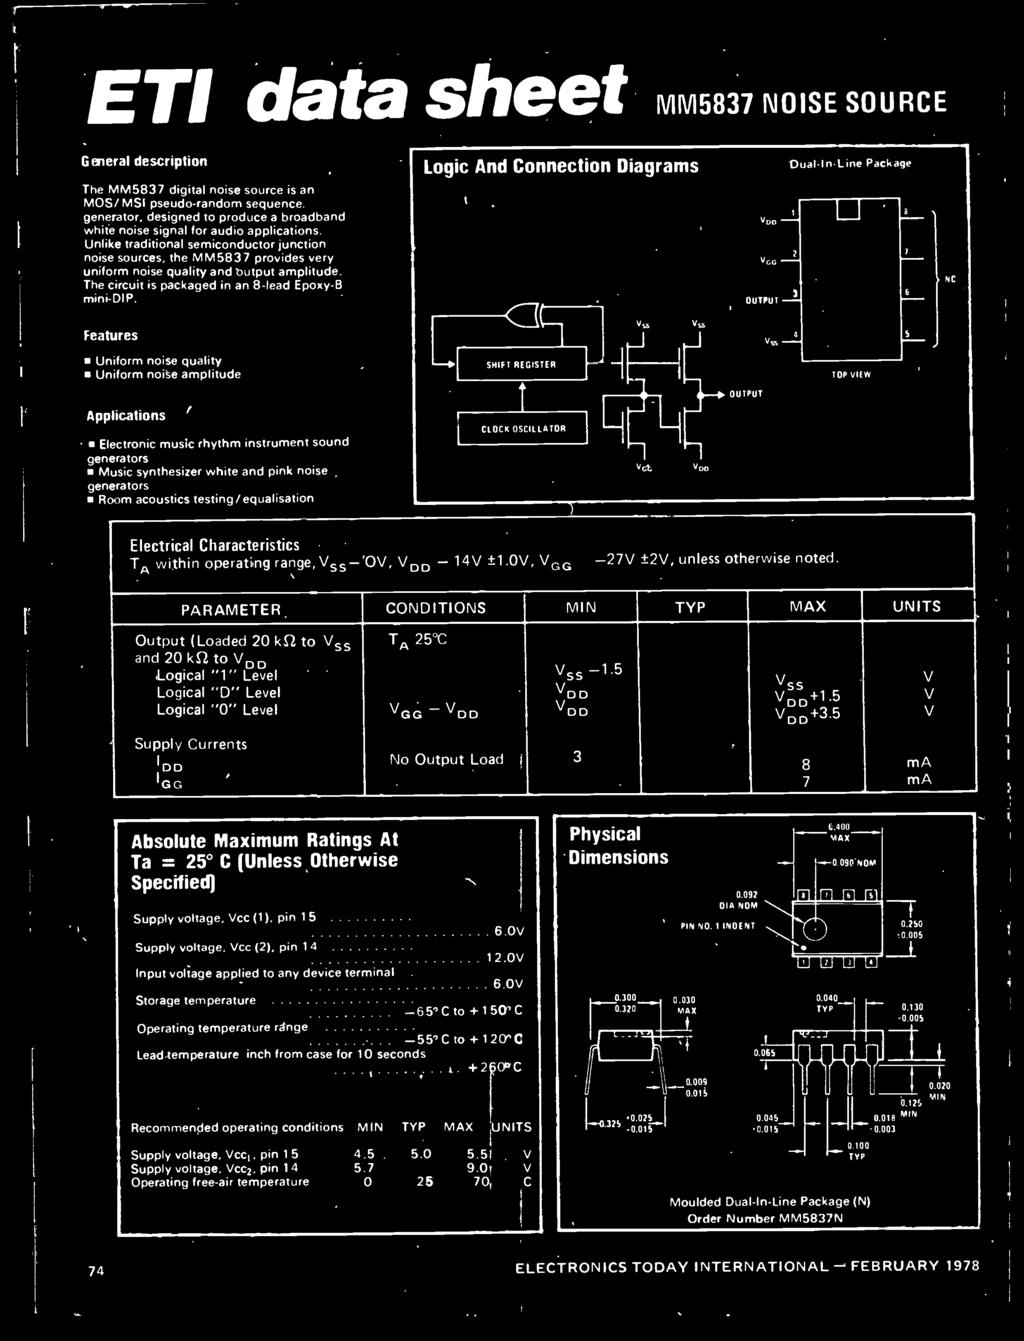 generators Music synthesizer white and pink noise generators Room acoustics testing/equalisation 1 CLOCK OSCILLATOR VGG 000 Electrical Characteristics TA within operating range, Vss- OV, VDD - 14V ±1.